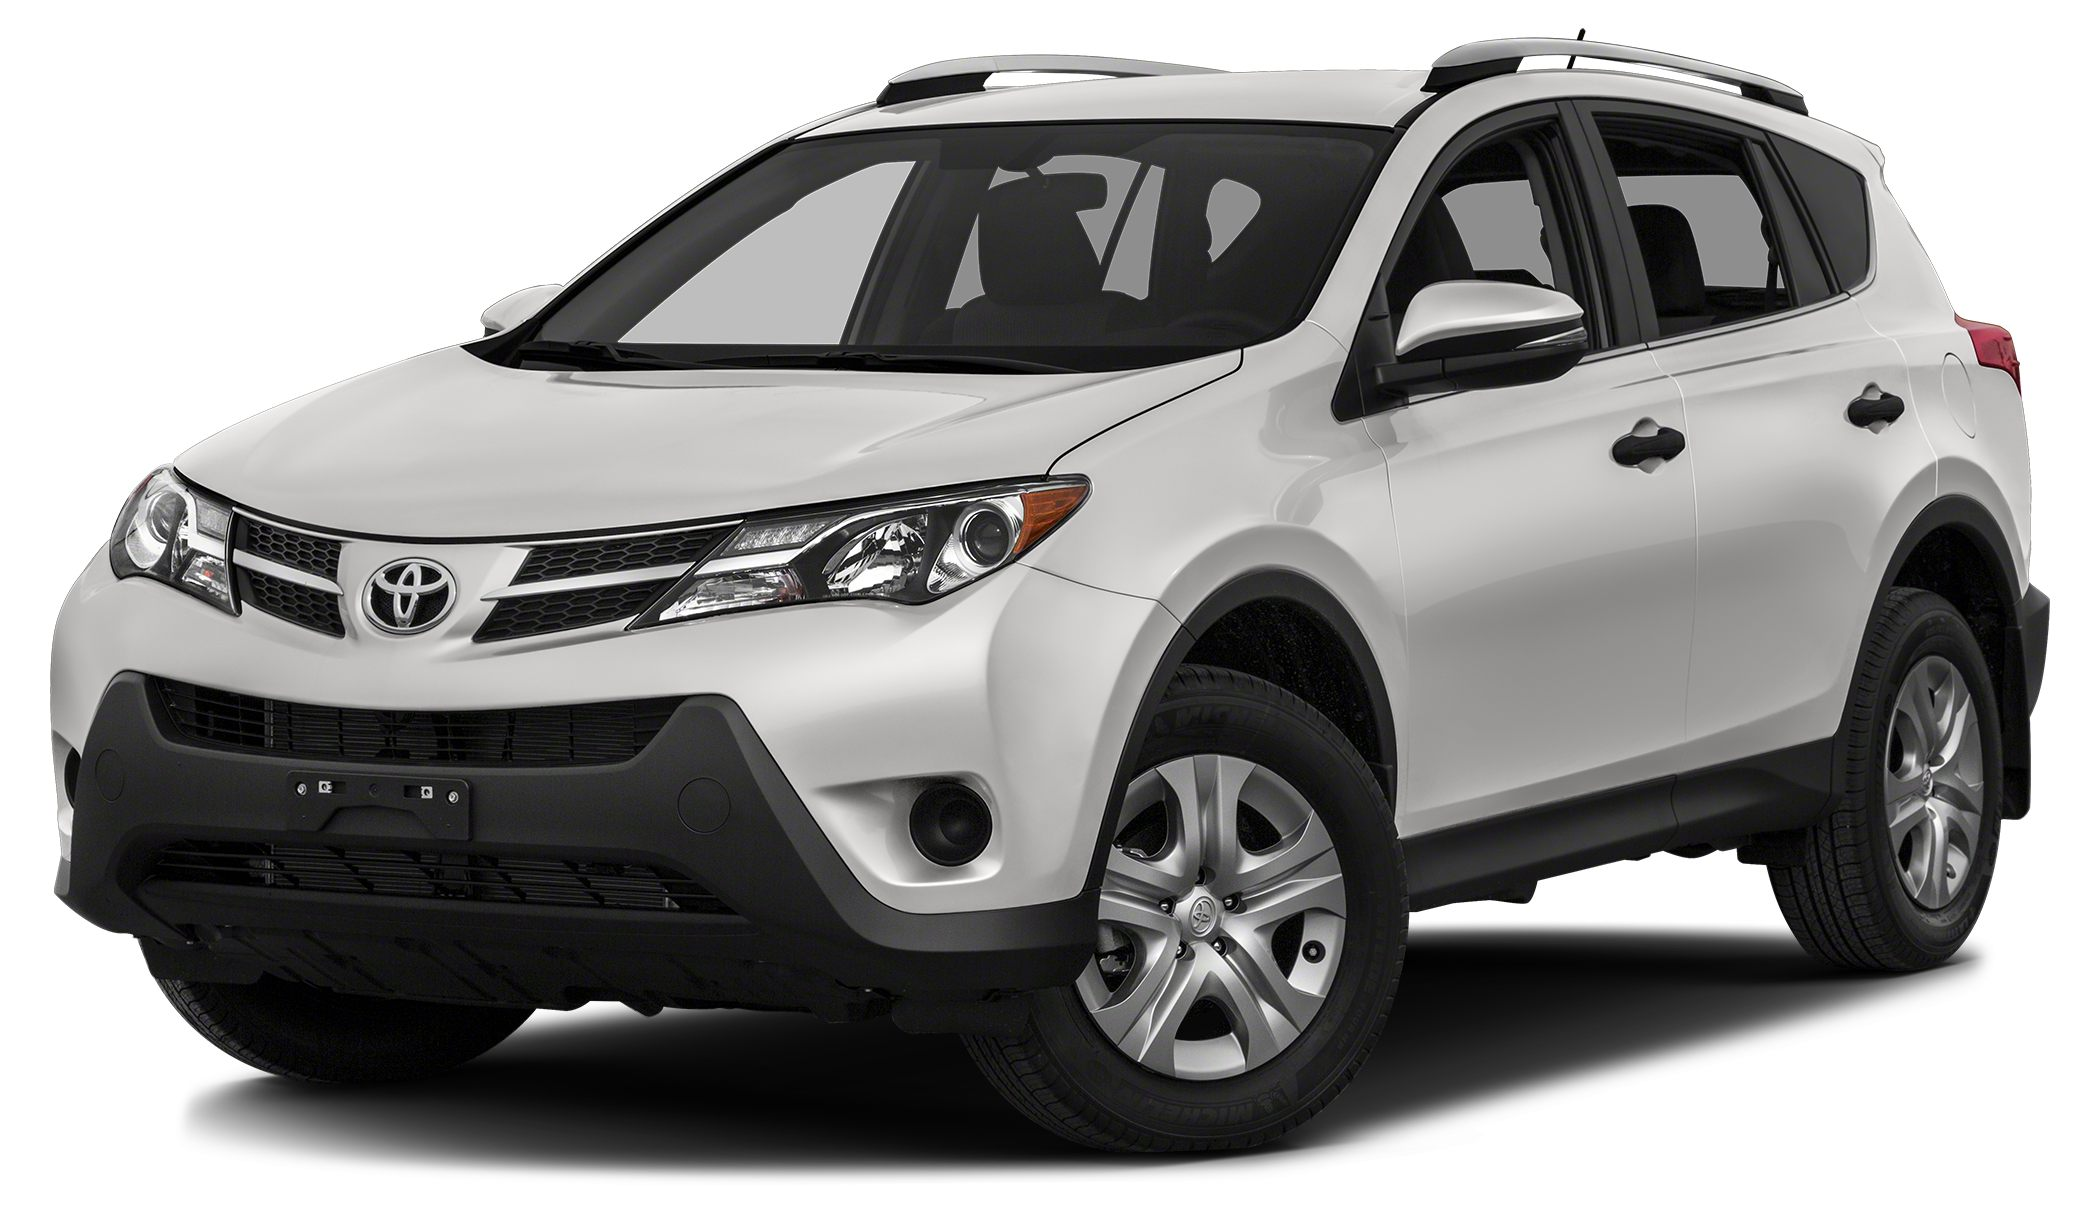 2014 Toyota RAV4 XLE CARFAX 1-Owner GREAT MILES 19250 XLE trim EPA 29 MPG Hwy22 MPG City Sun